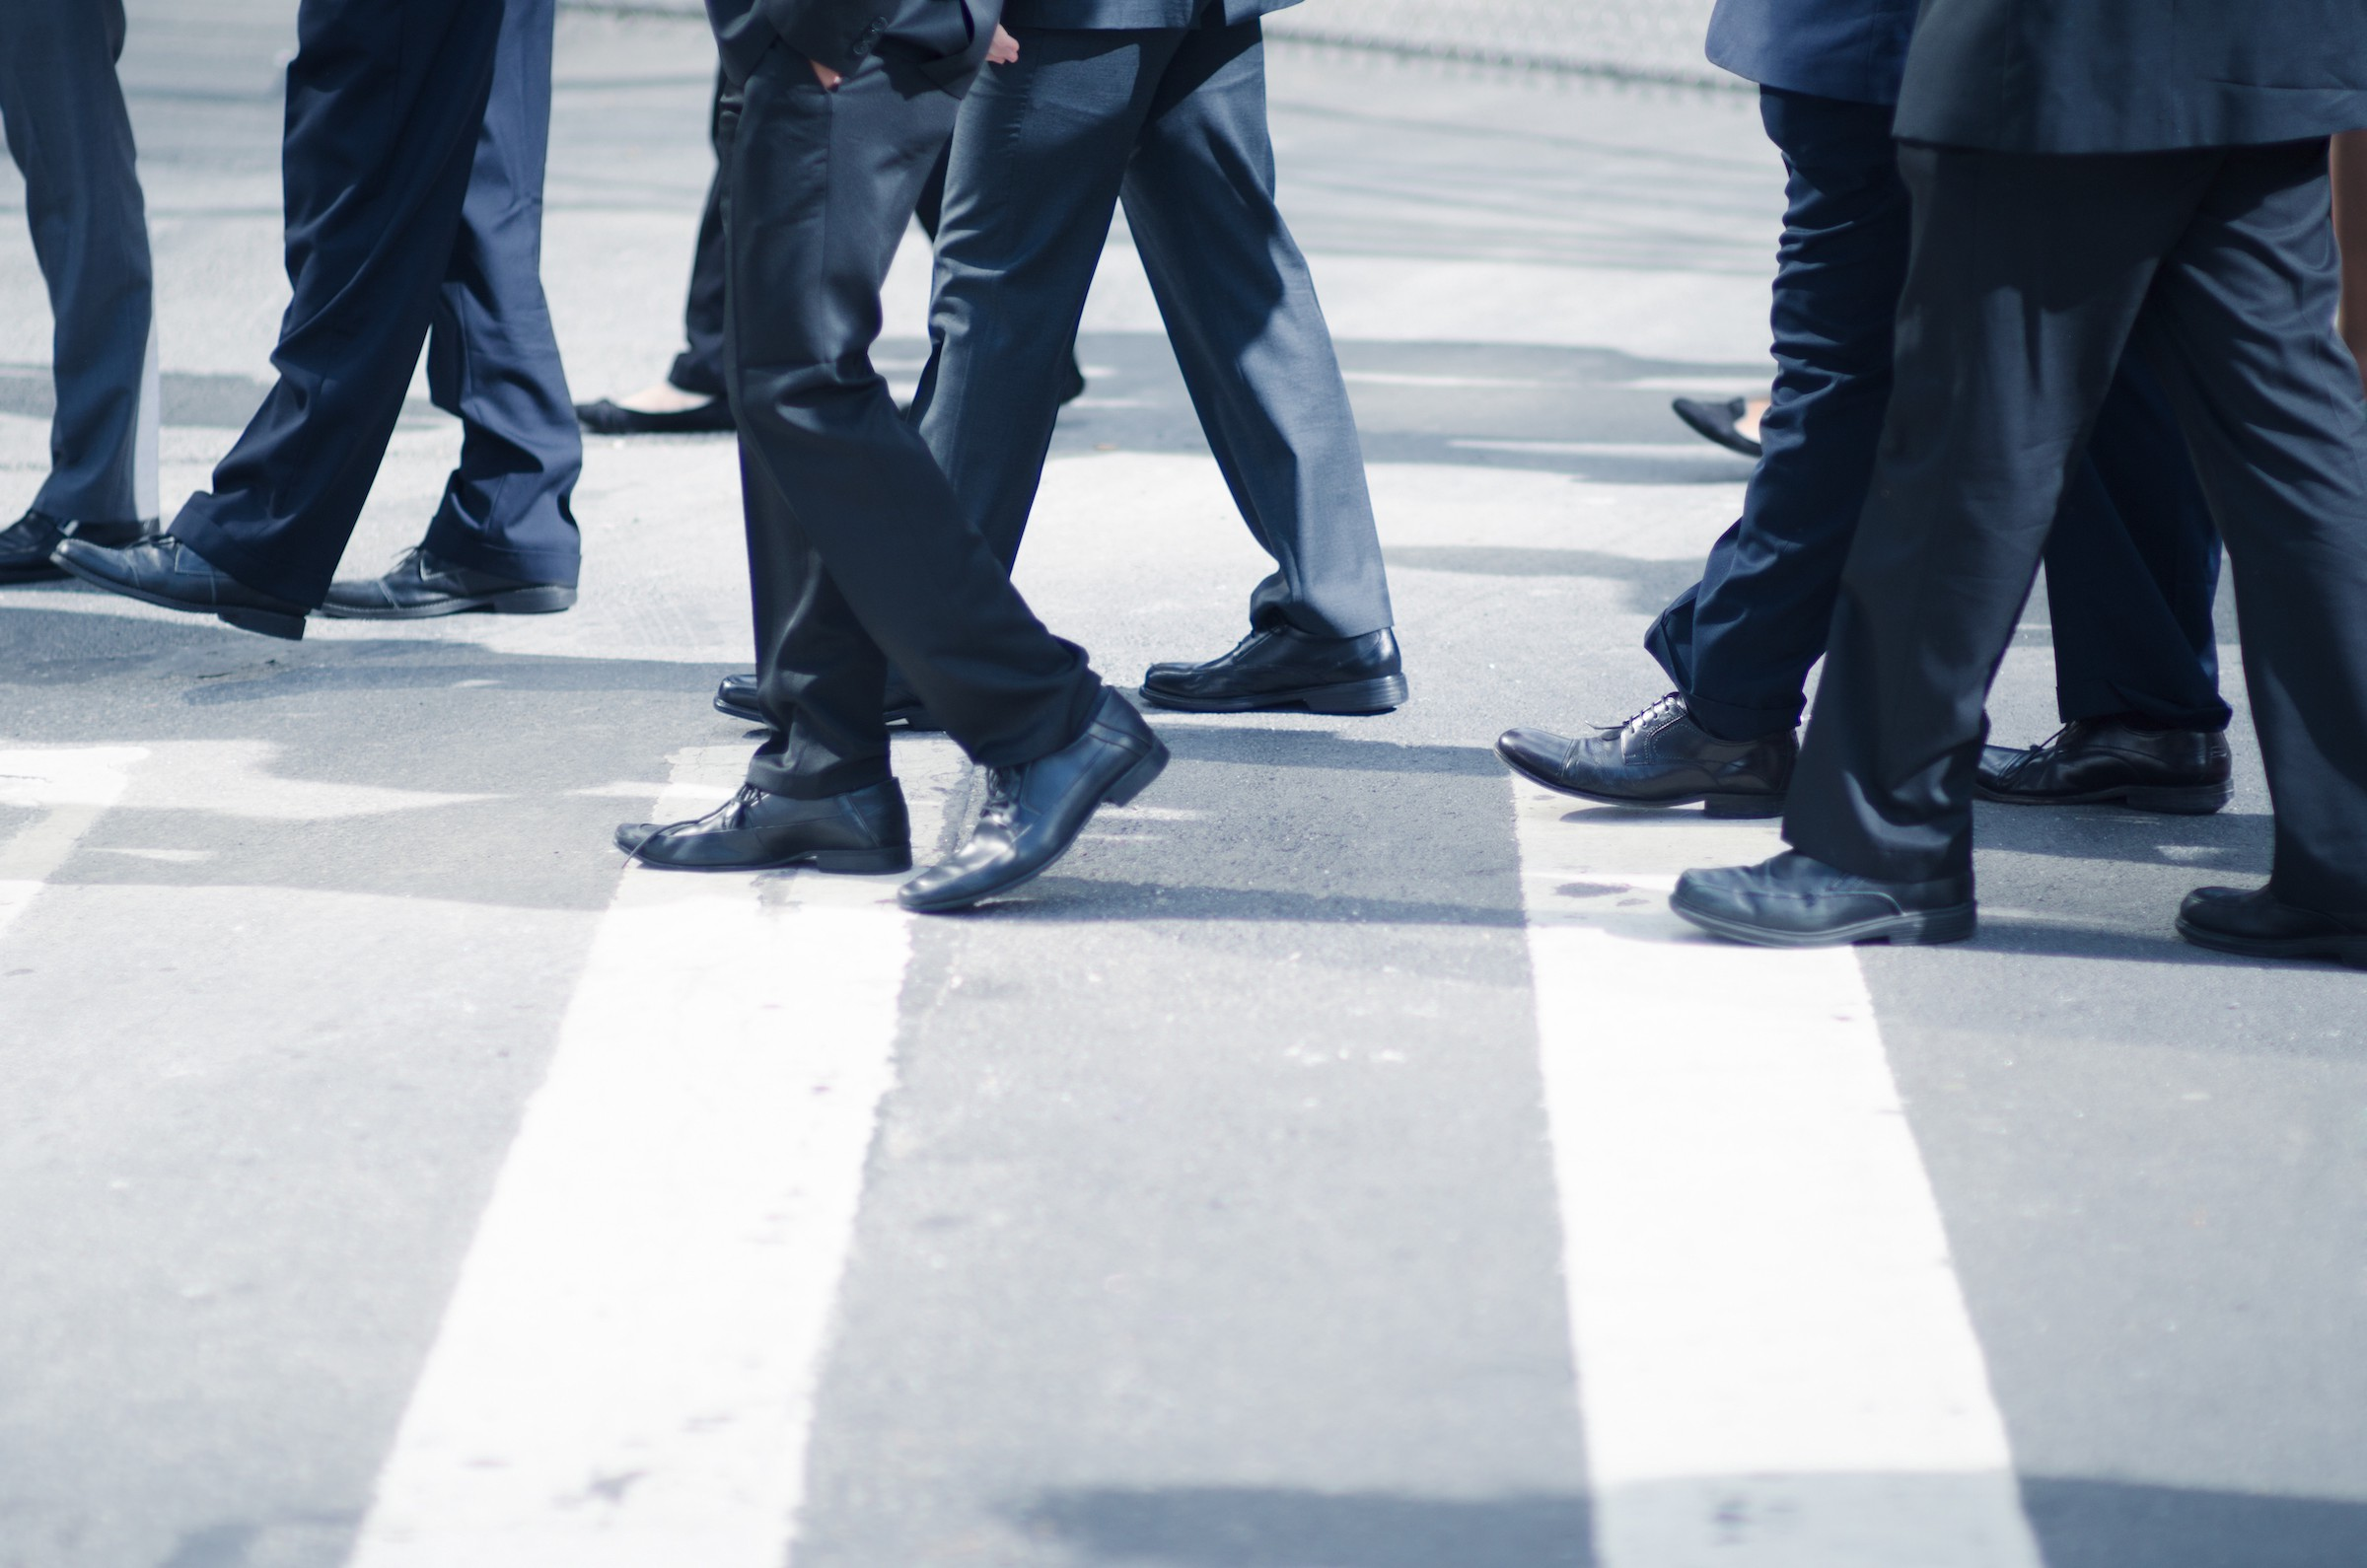 Group of businessmen in similar dark navy suits crossing a city street. You can just barely see the feet of two women.